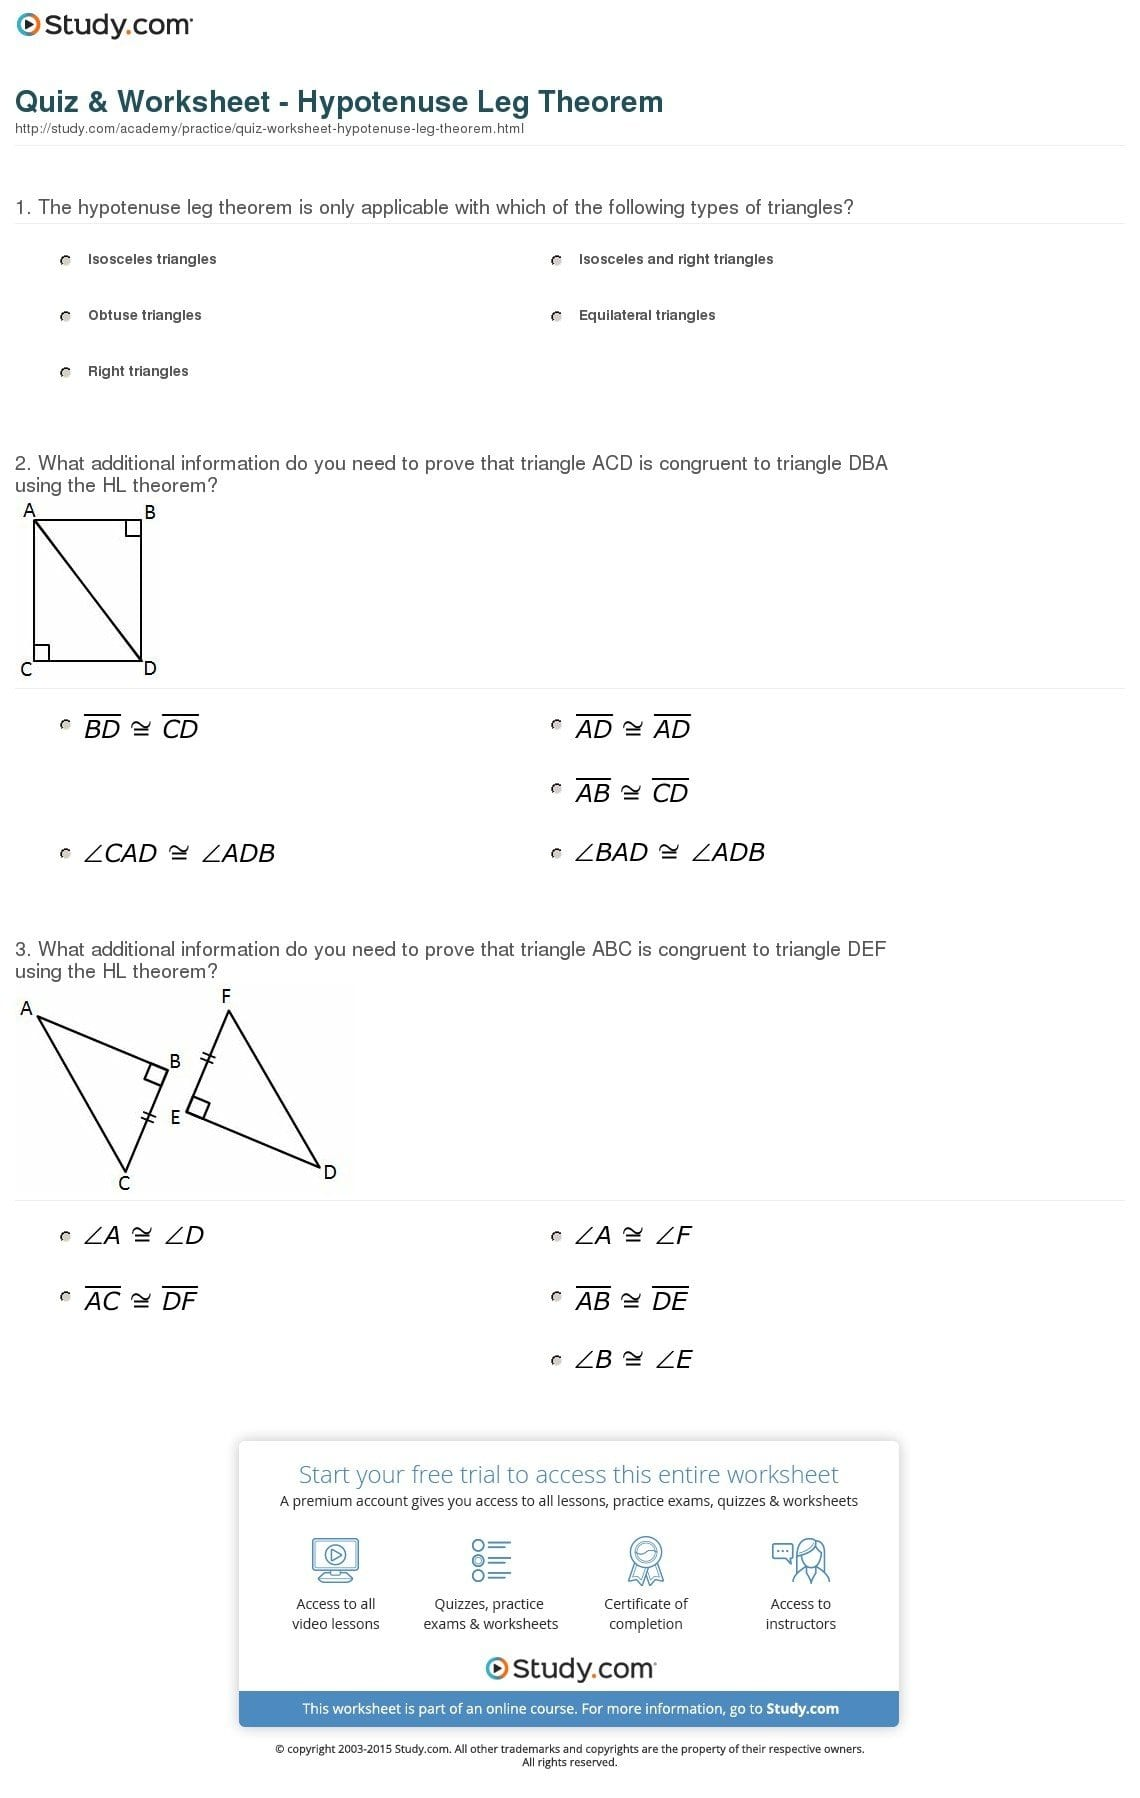 Geometry Worksheet Congruent Triangles Answers Proving Triangles Or Proving Triangles Congruent Worksheet Answers